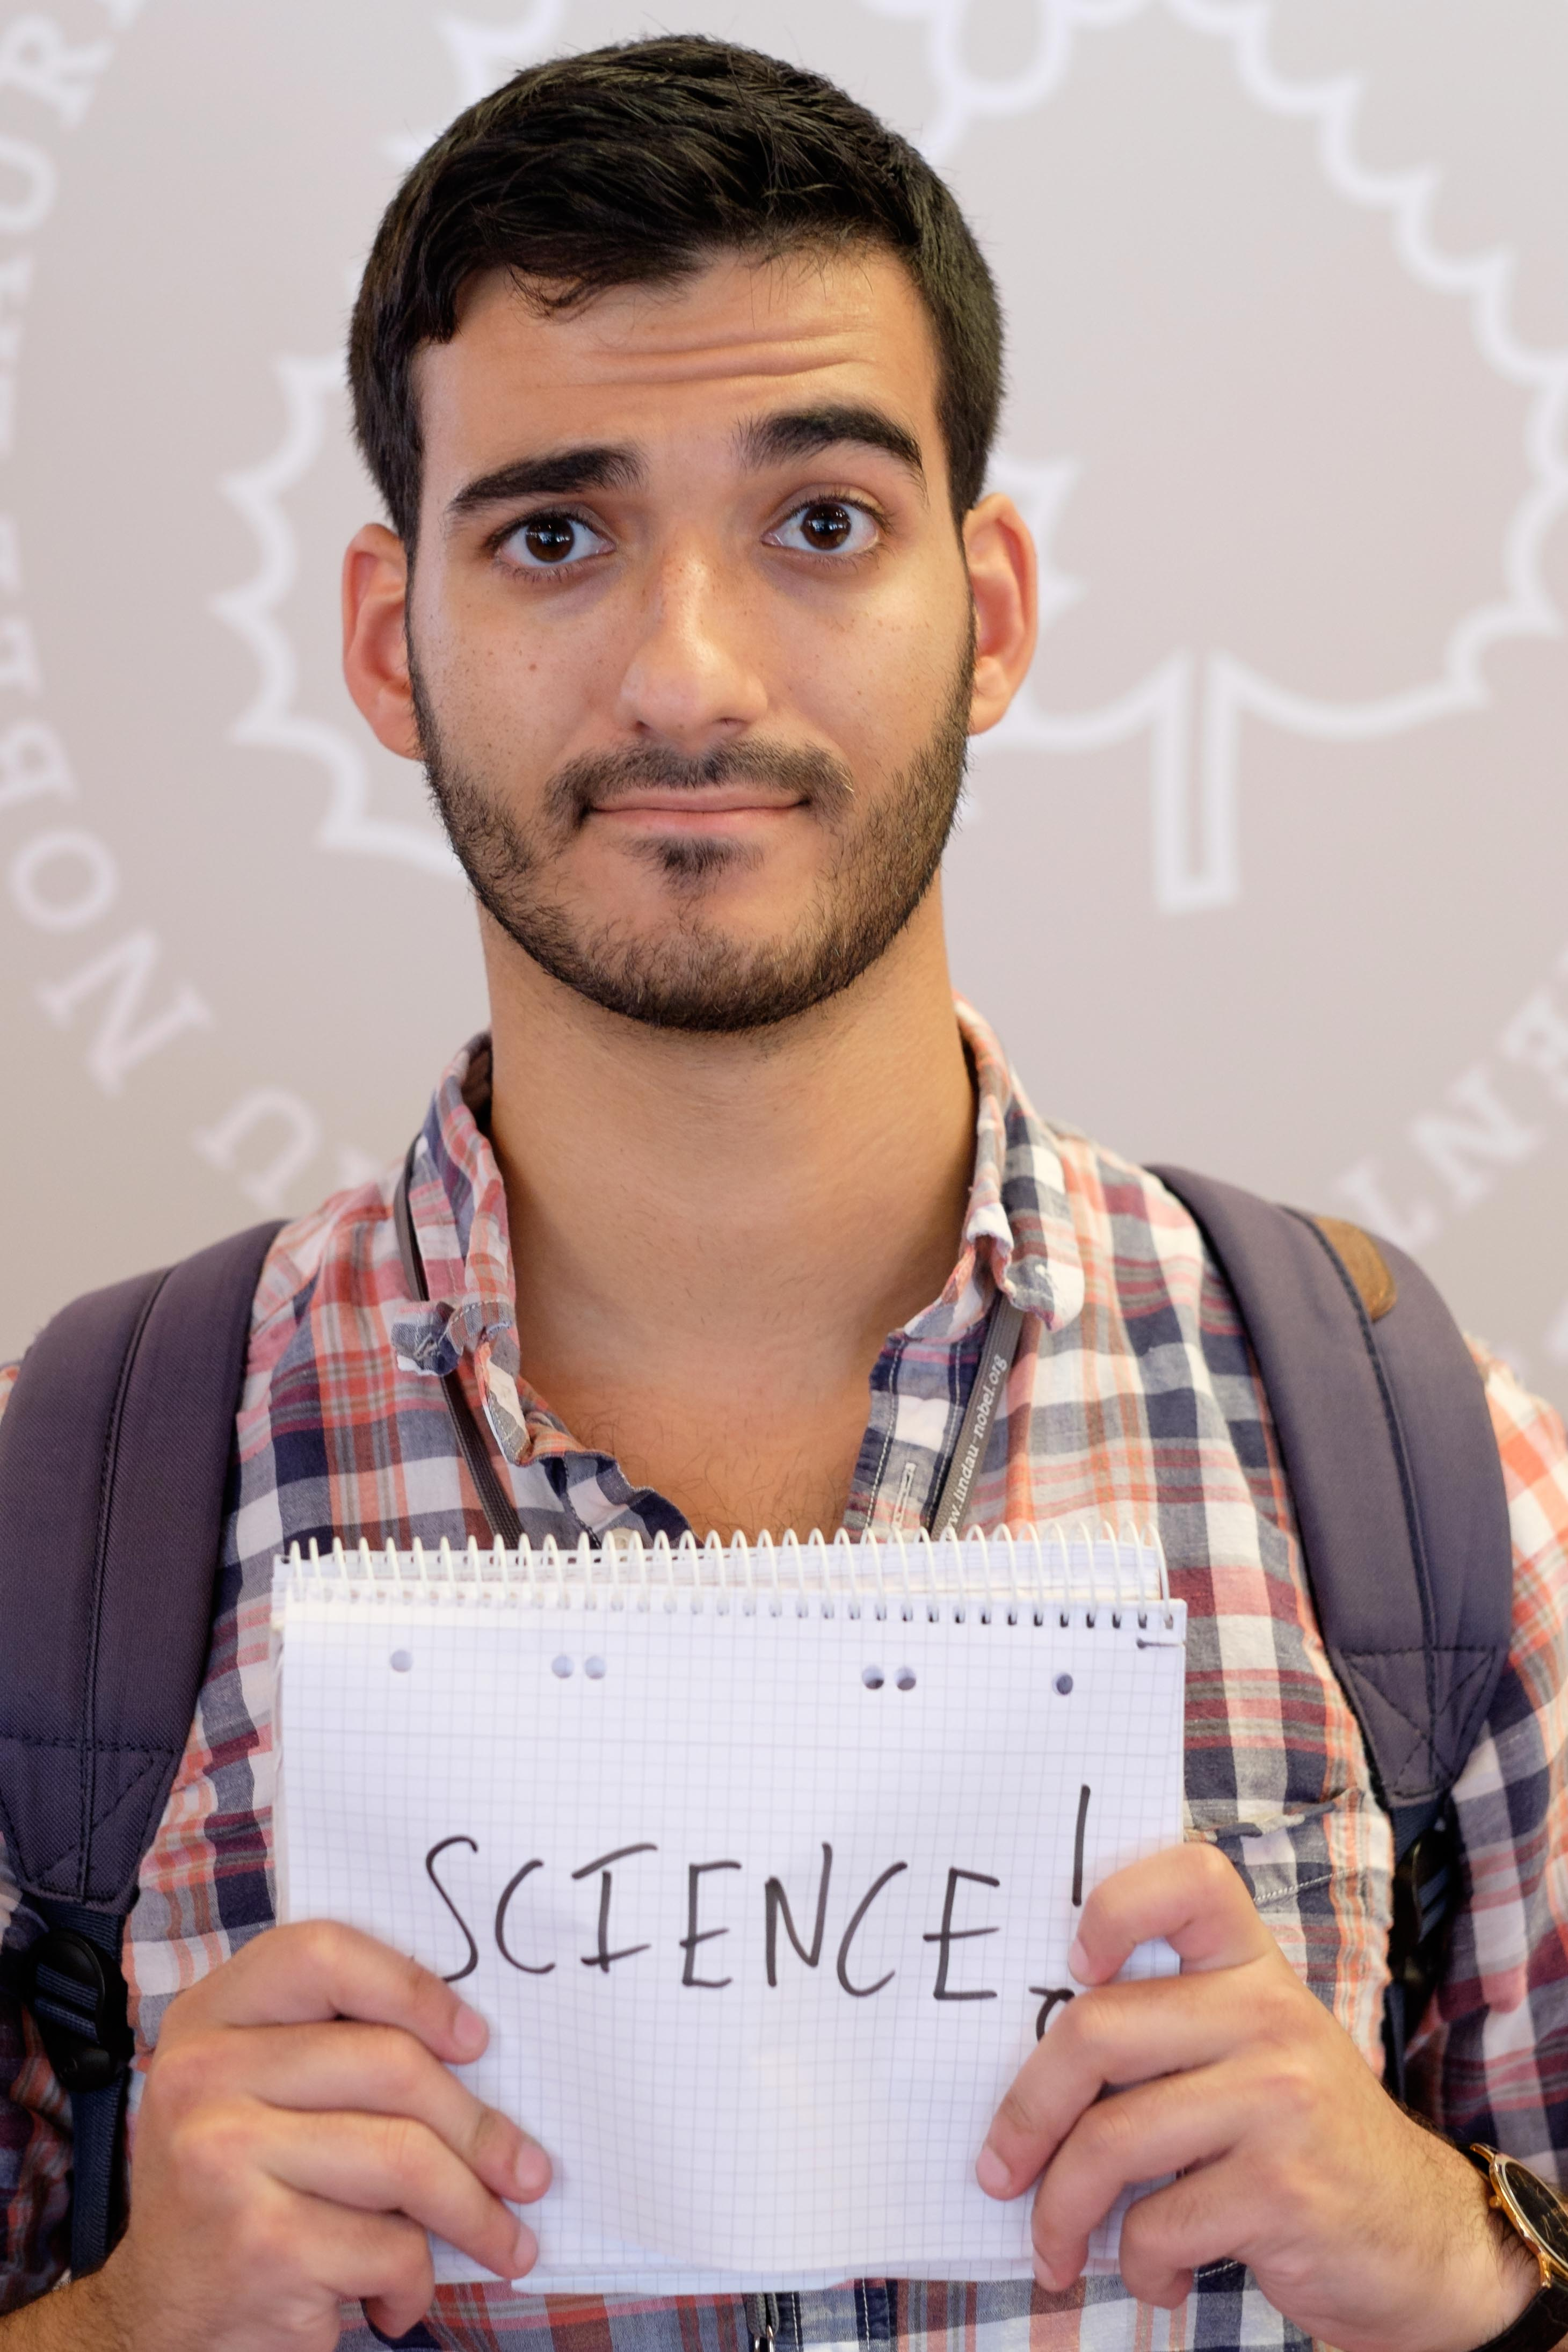 2015_Lindau_Science_Portrait-45